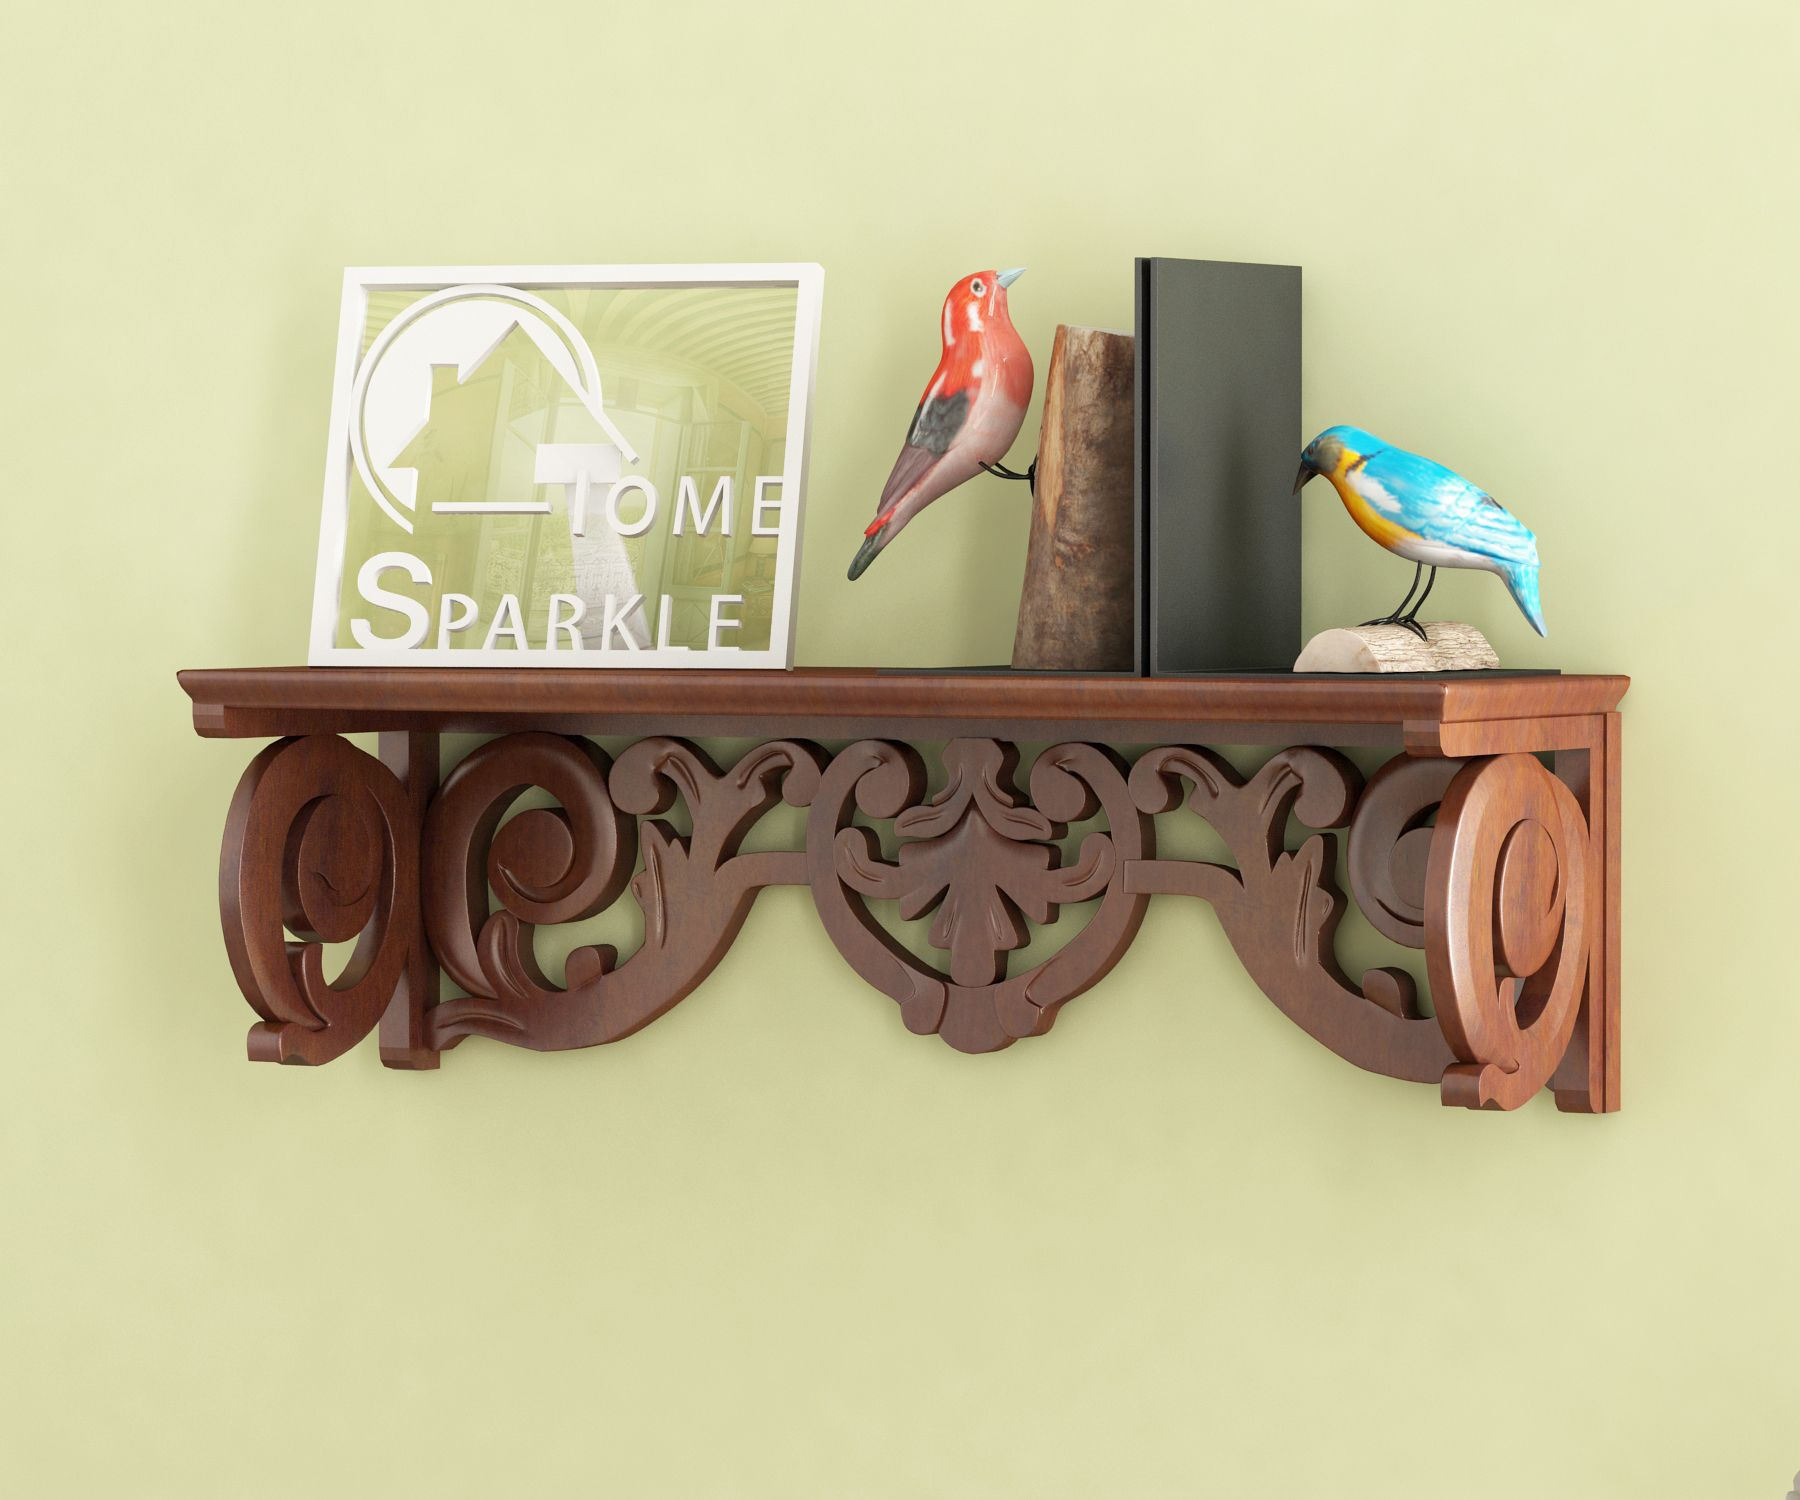 Home Sparkle MDF Carved Wall Shelf For Wall Décor -Suitable For Living Room/Bed Room (Designed By Craftsman)